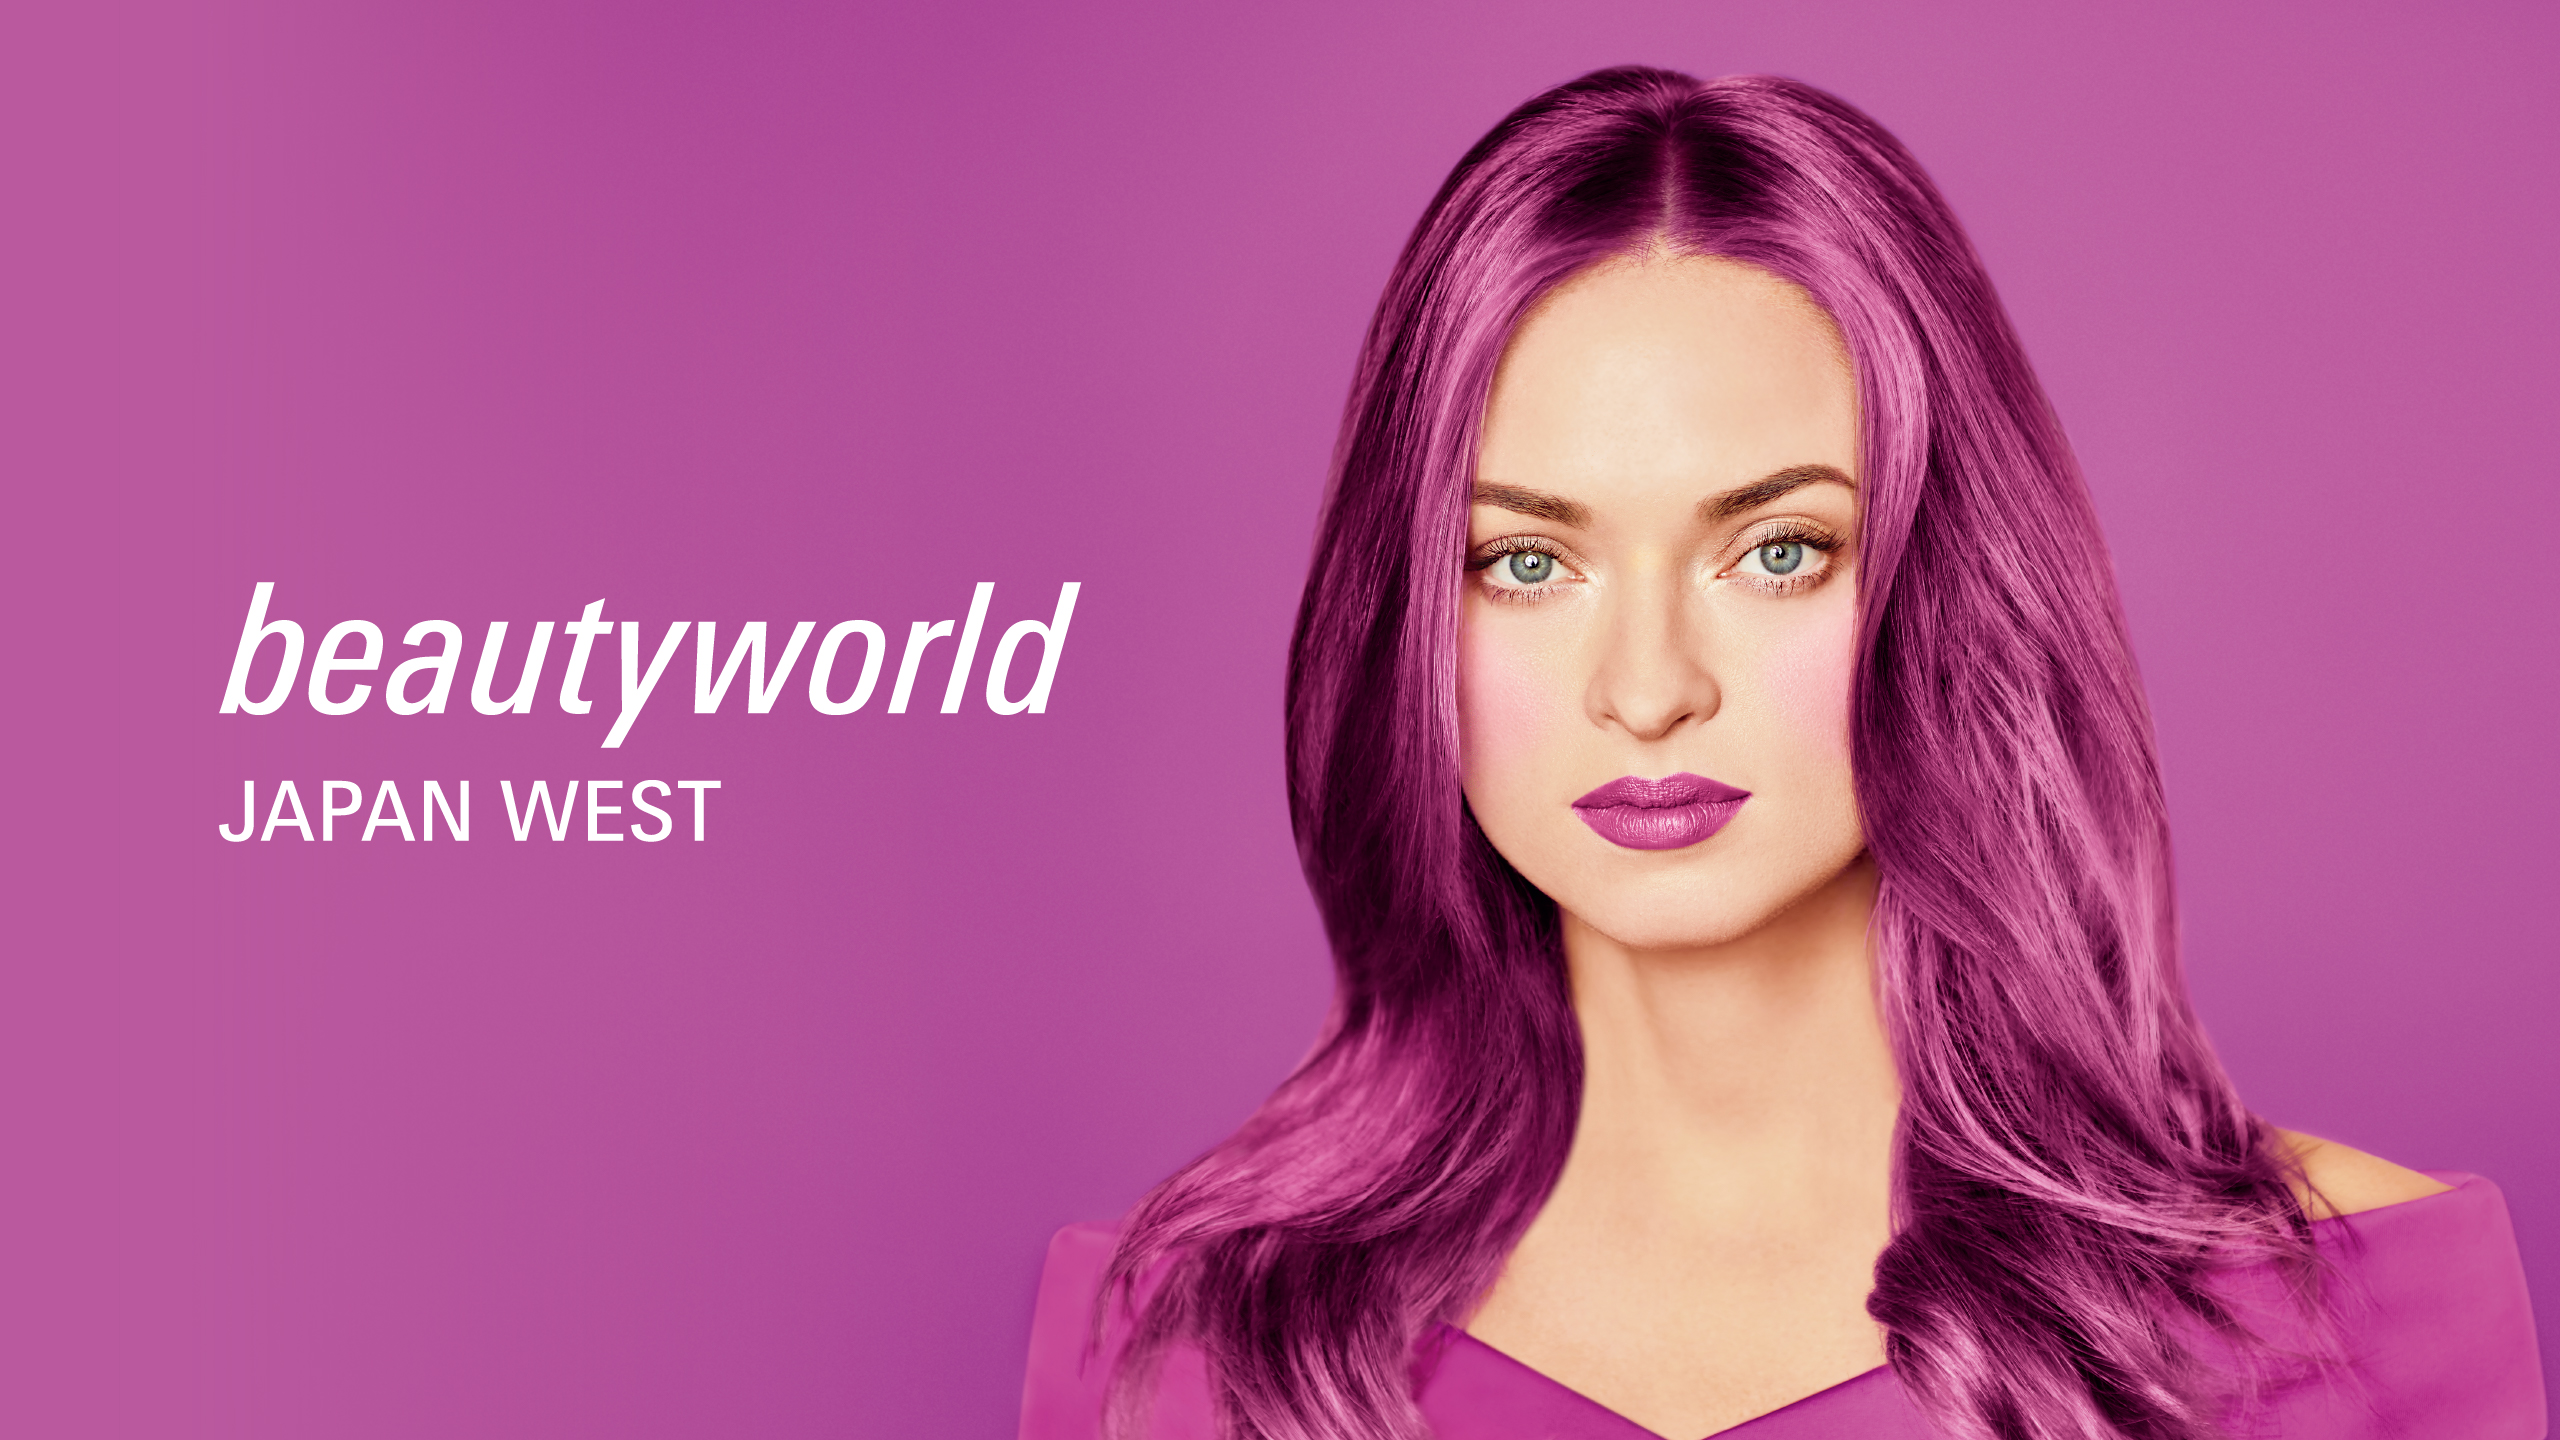 Beautyworld Japan West Keyvisual 2021